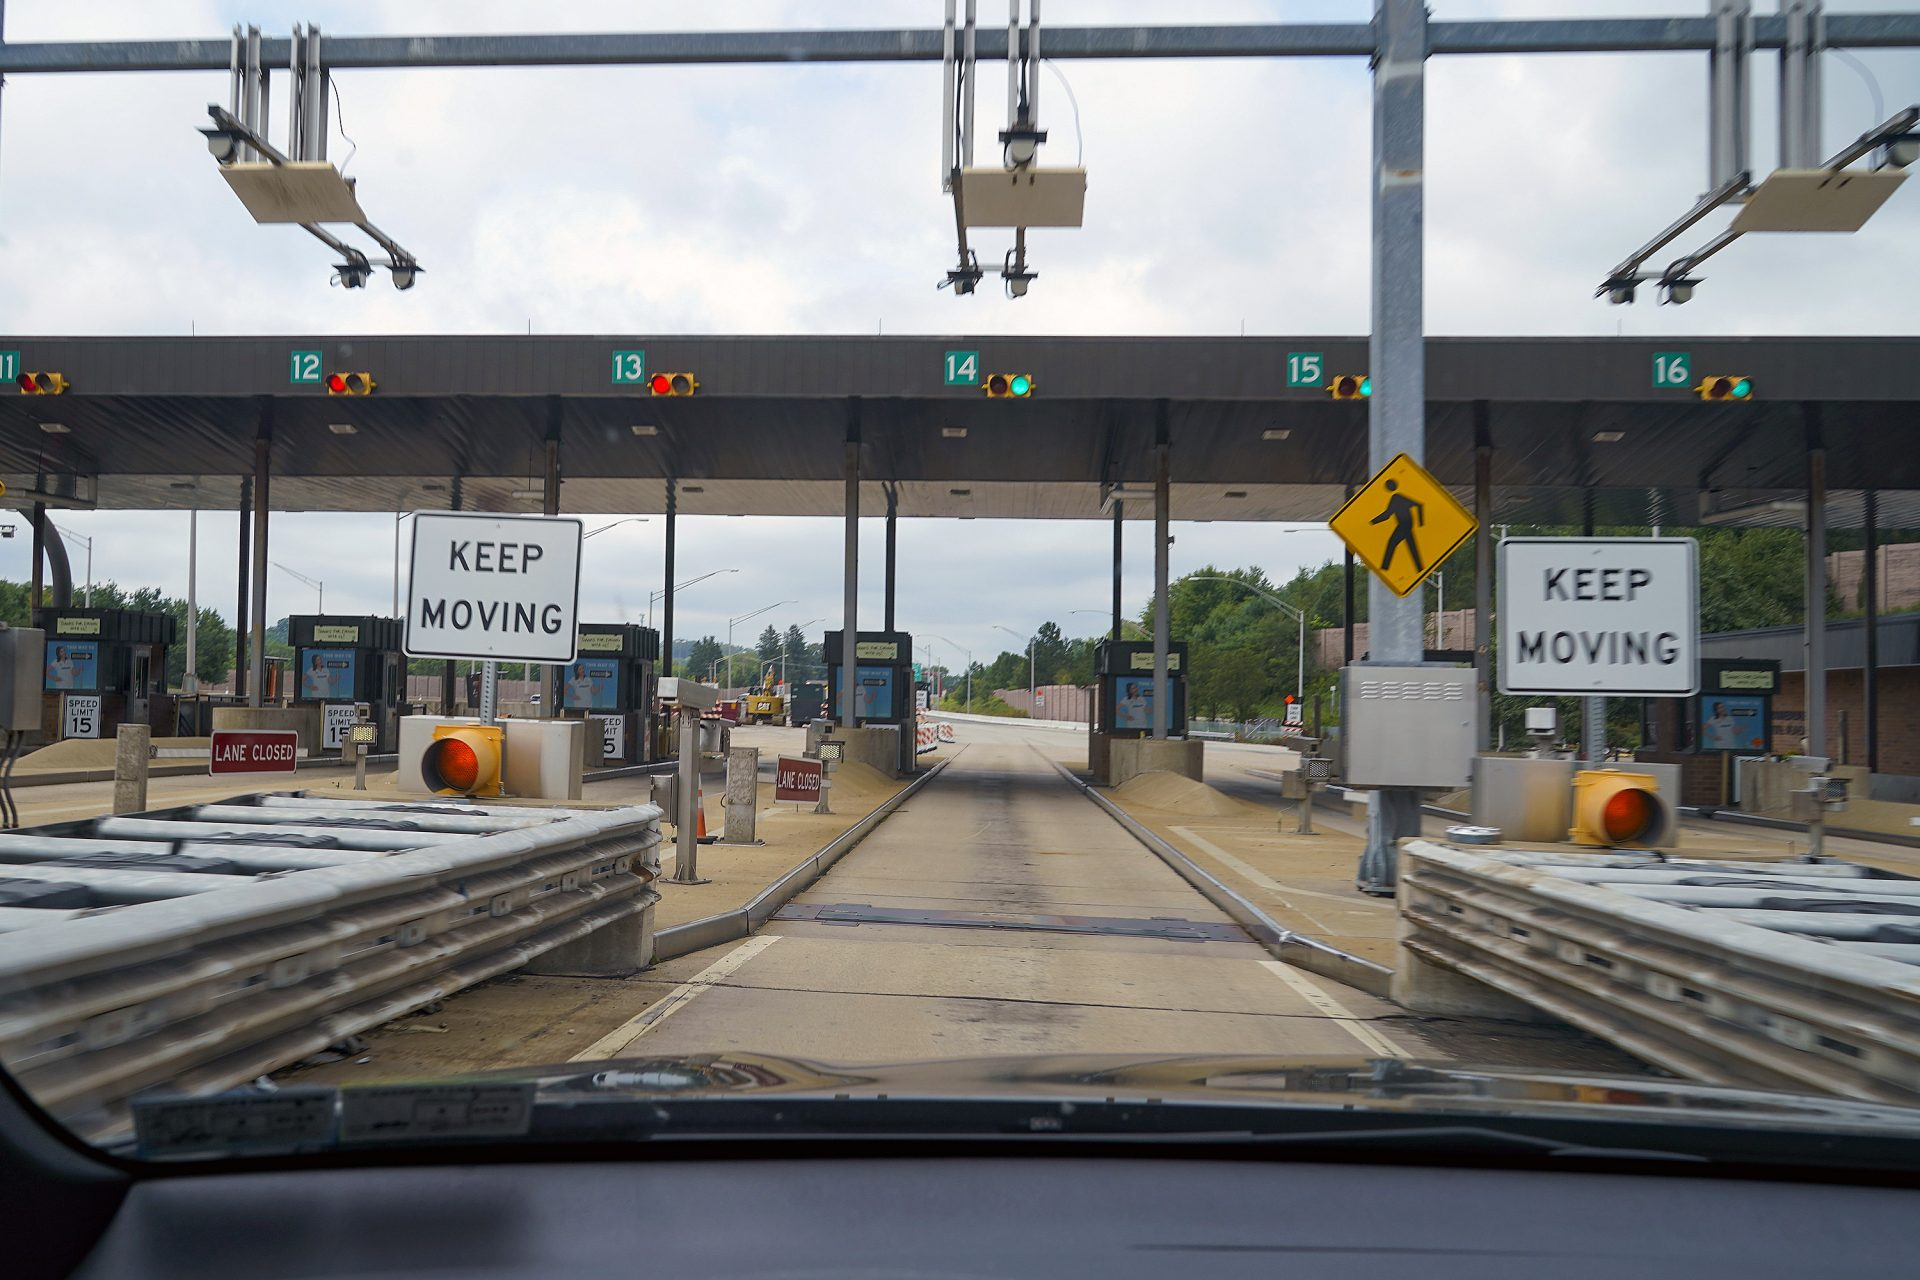 In this photo made through a windshield, the sensors and lights are seen at the west bound toll gate of the Pennsylvania Turnpike in Cranberry Township, Pa., on Monday, Aug. 30, 2021.